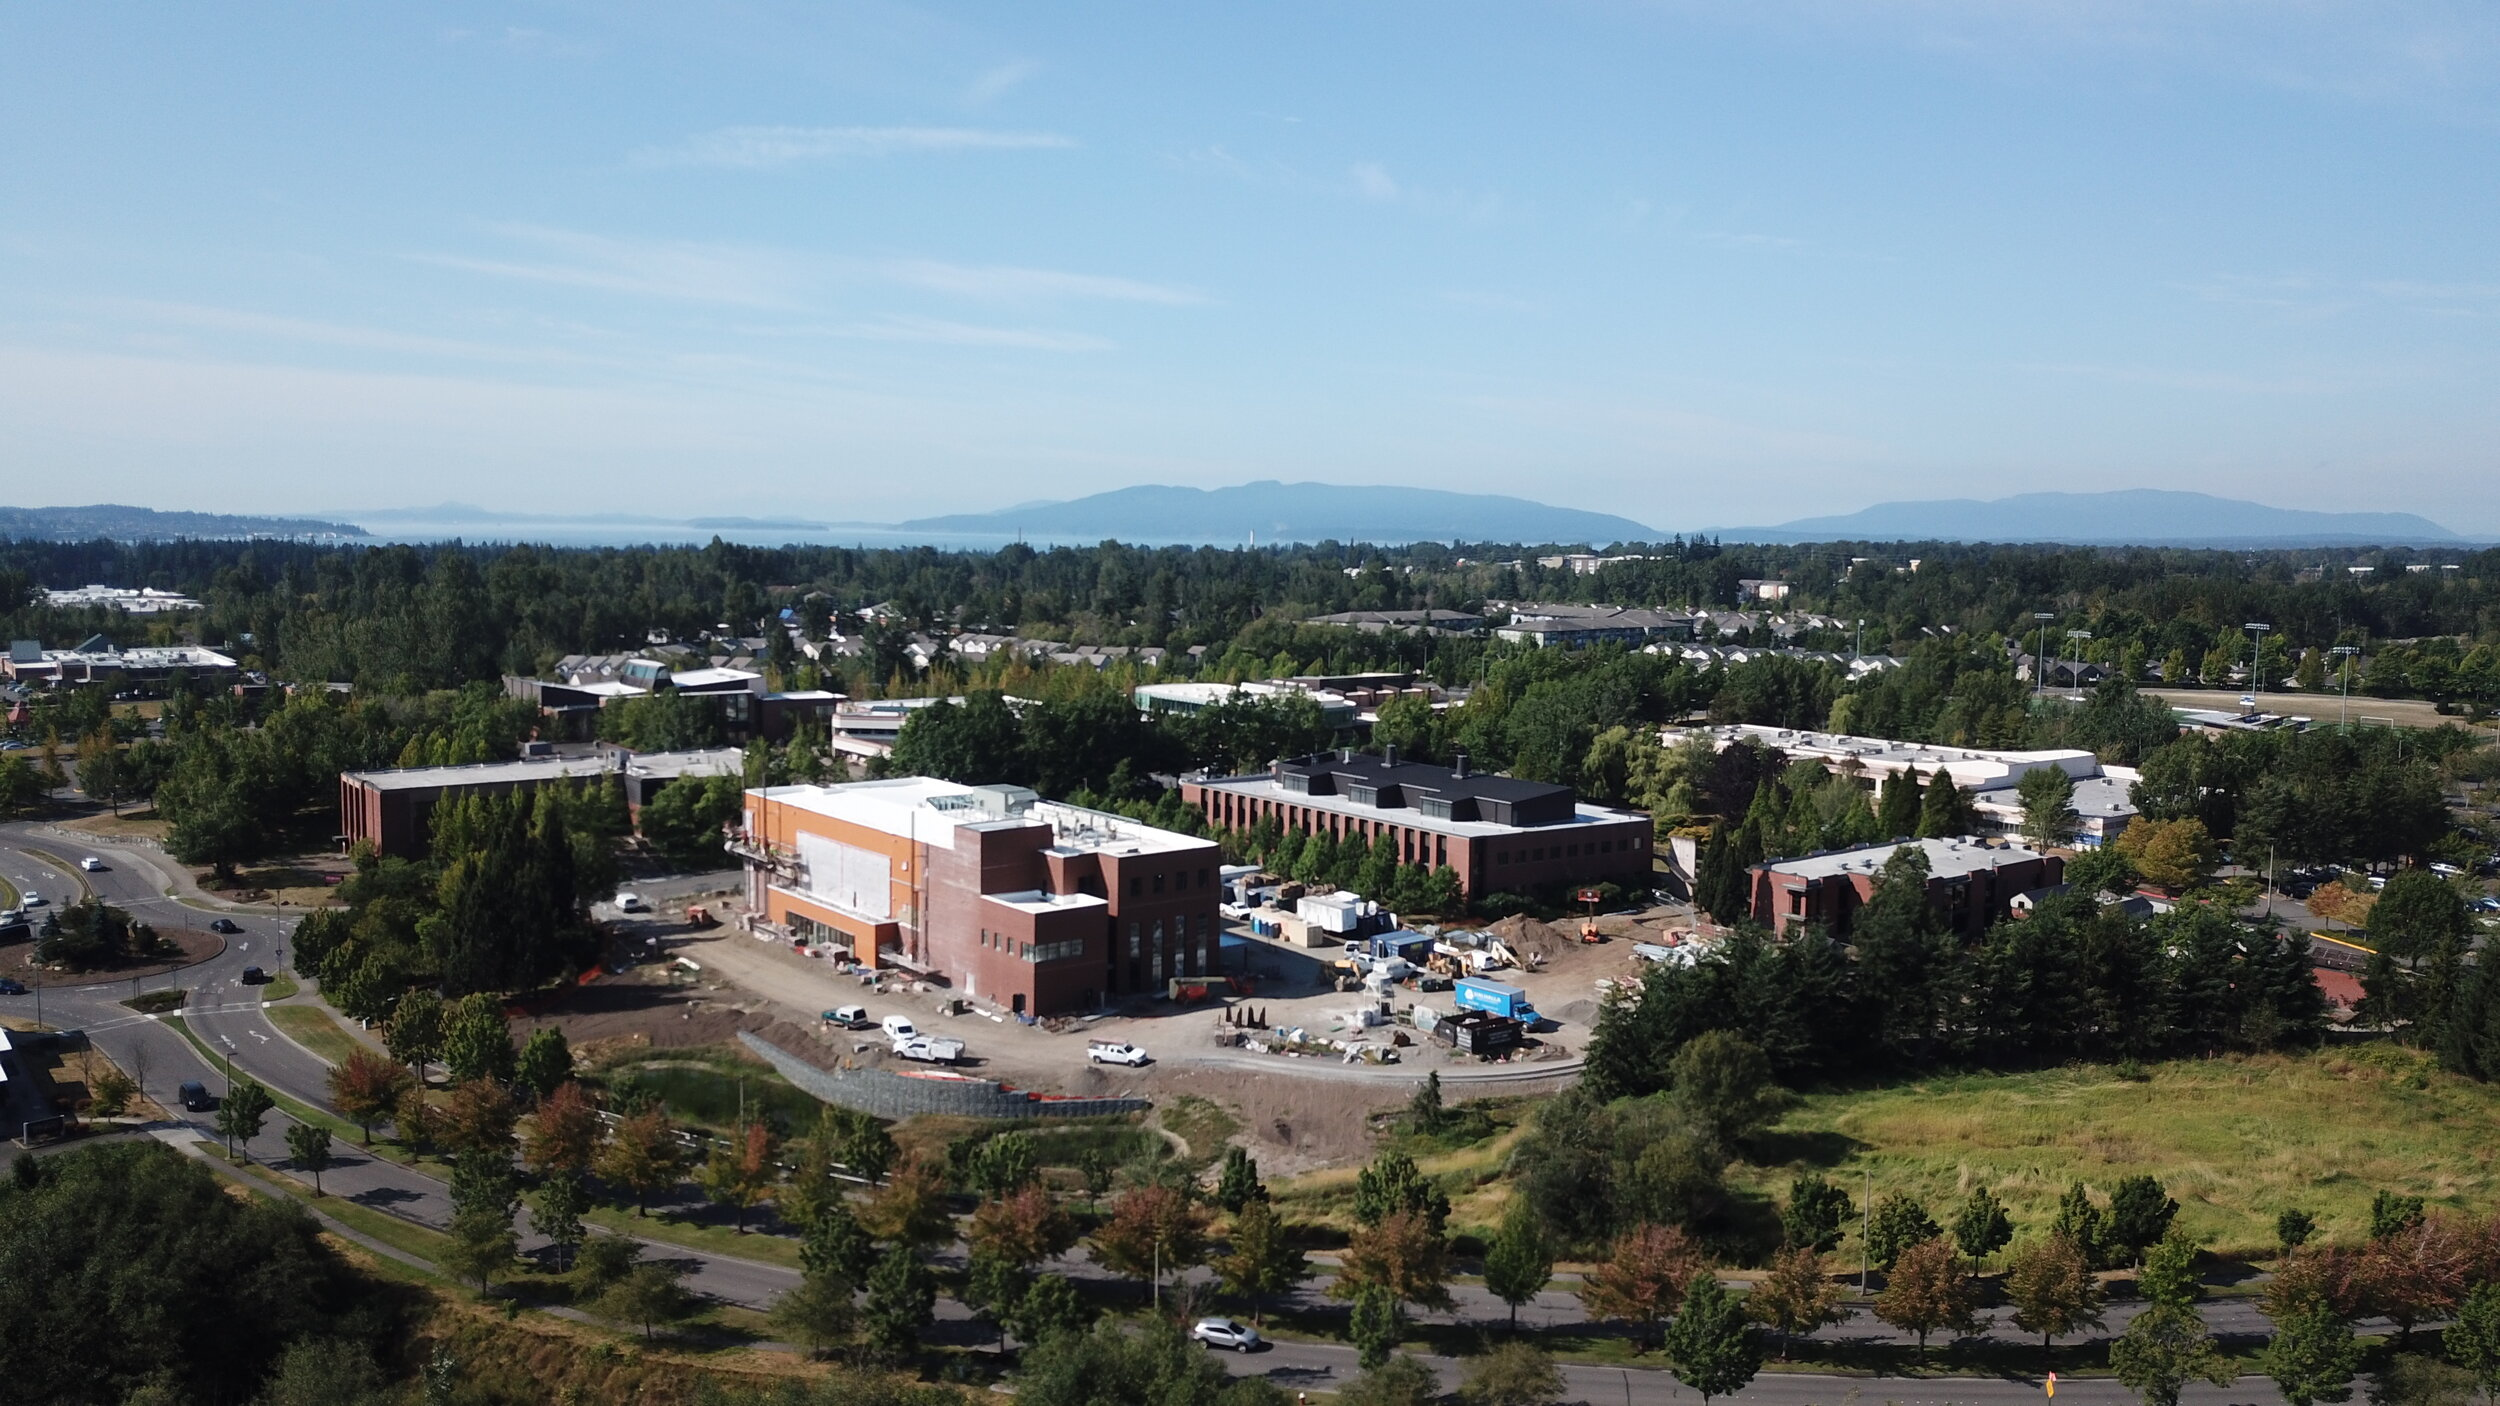 2019-08-14 WCC Learning Commons Aerial.JPG